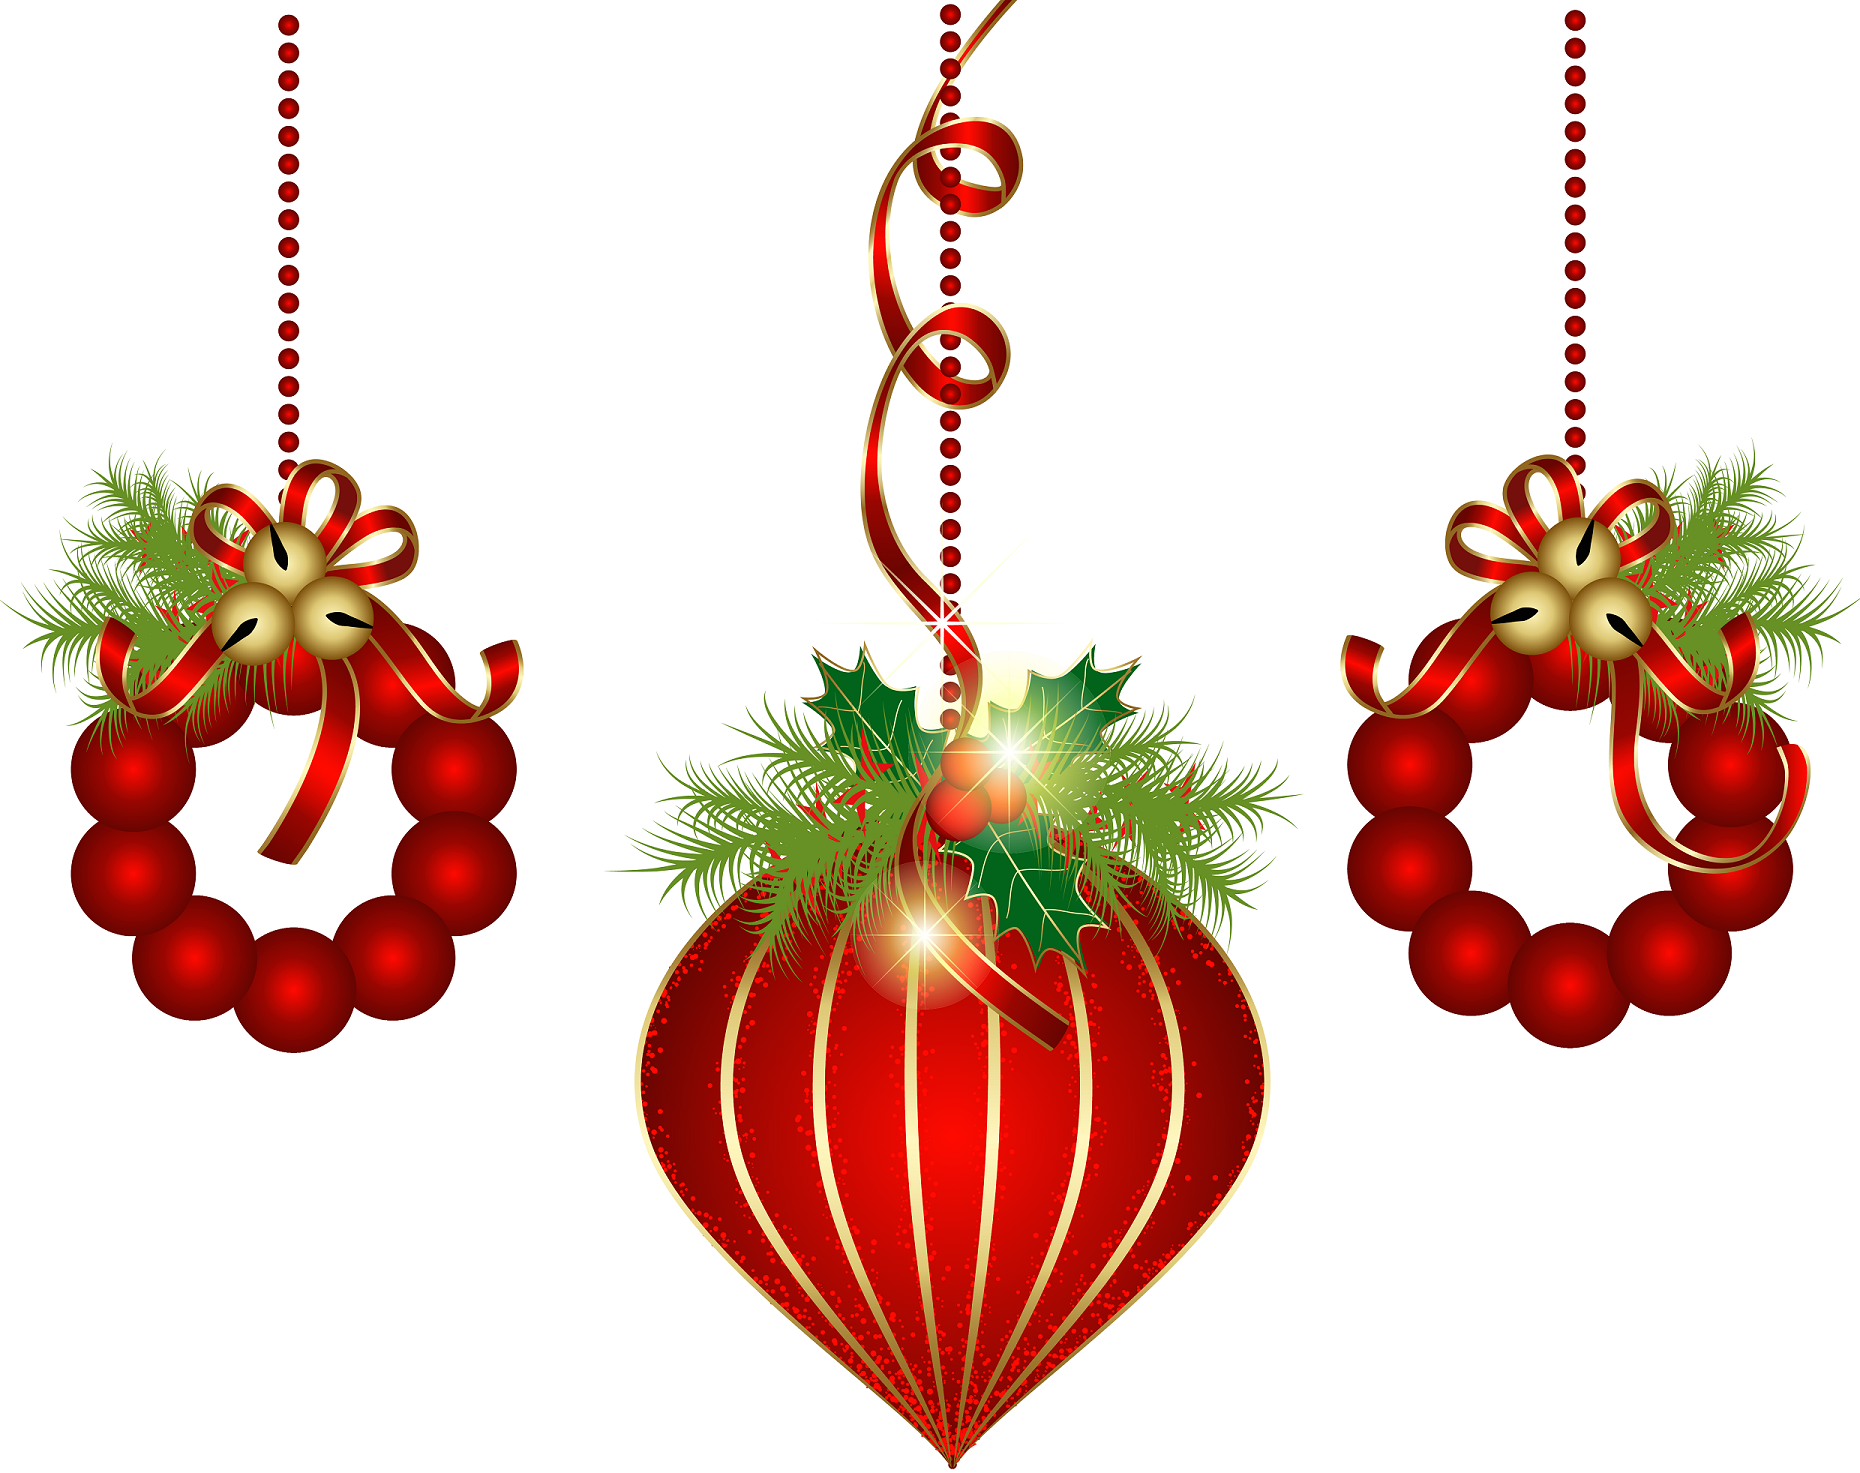 Hanging christmas ornaments clip art holiday scrapbook cards imag - Hanging christmas ornaments ...